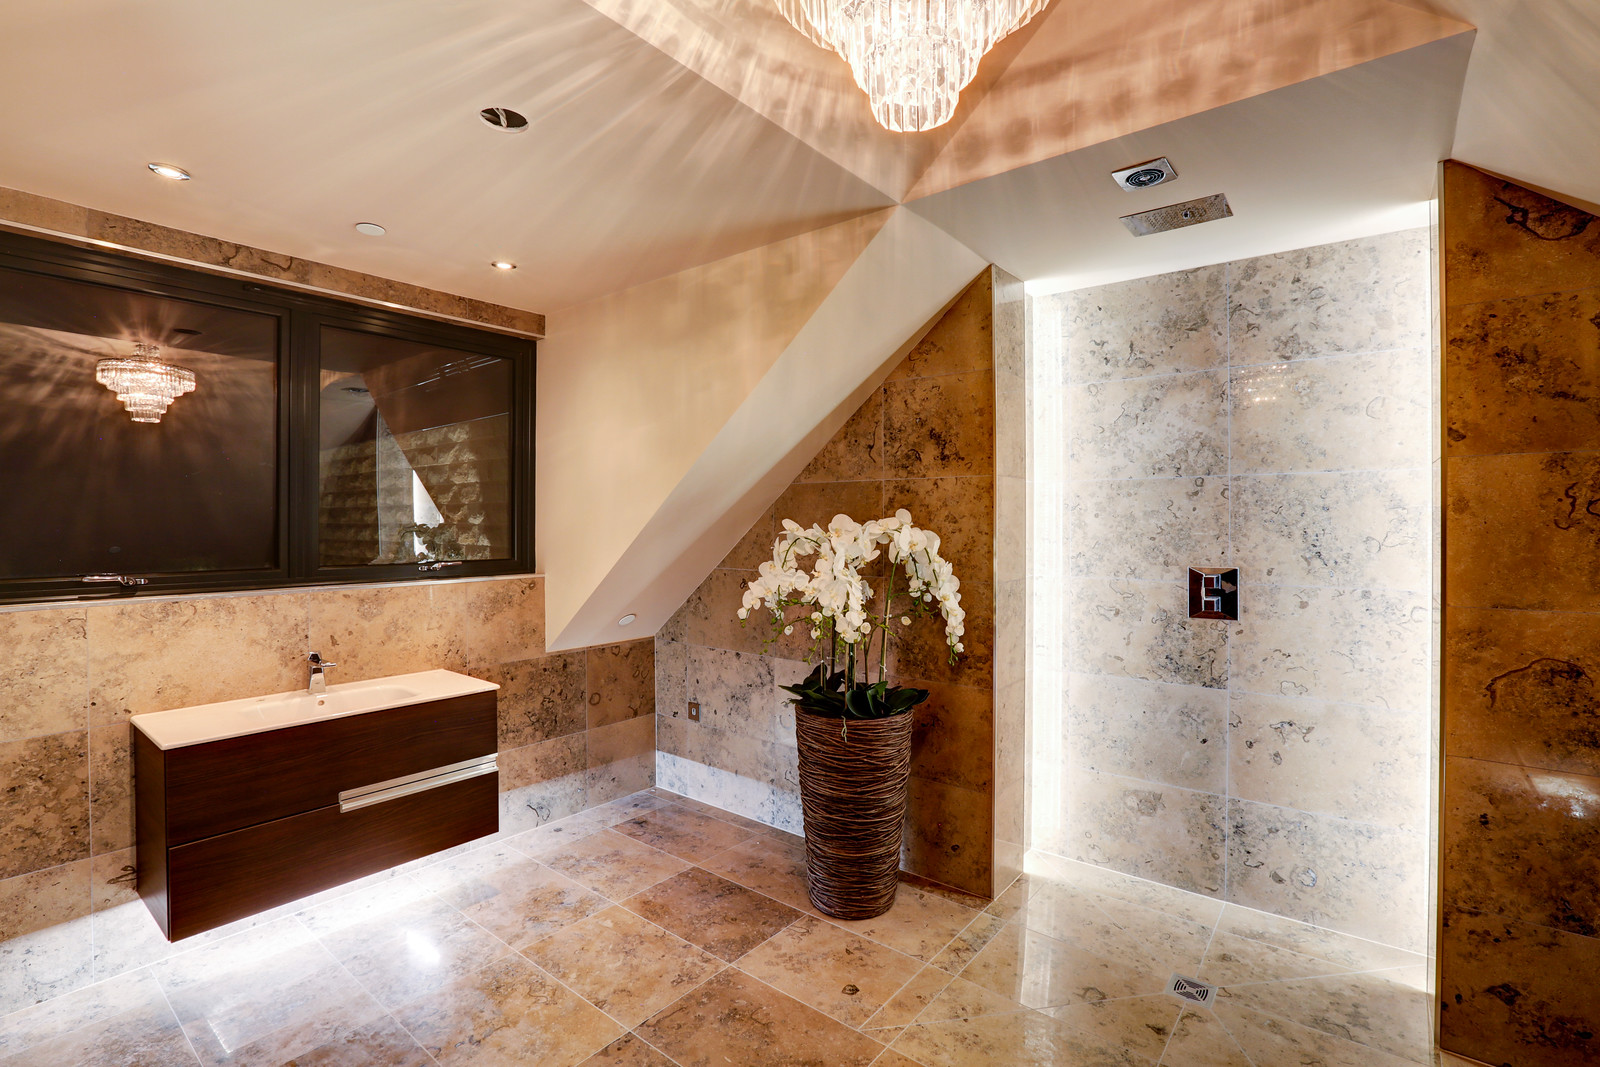 Shower room in marble, Tanglewood, Colston Bassett by Guy Phoenix